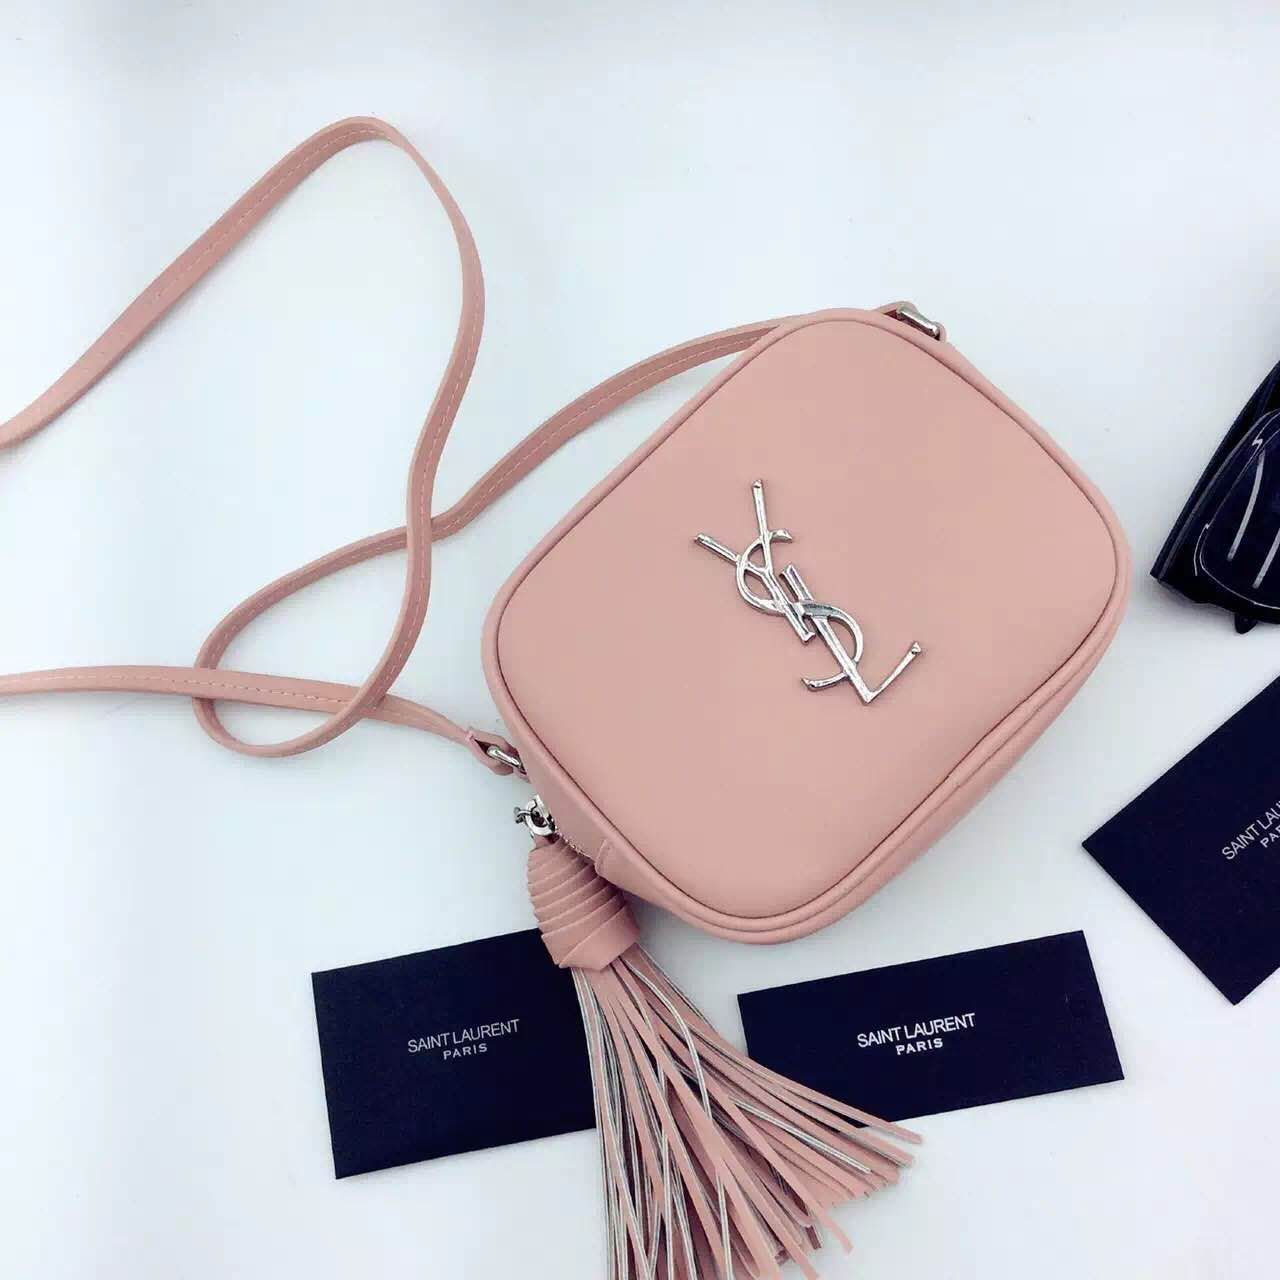 New Arrival!2016 Cheap YSL Out Sale with Free Shipping-Saint Laurent  Monogram Medium Blogger Bag in Pink Leather 6570970191186